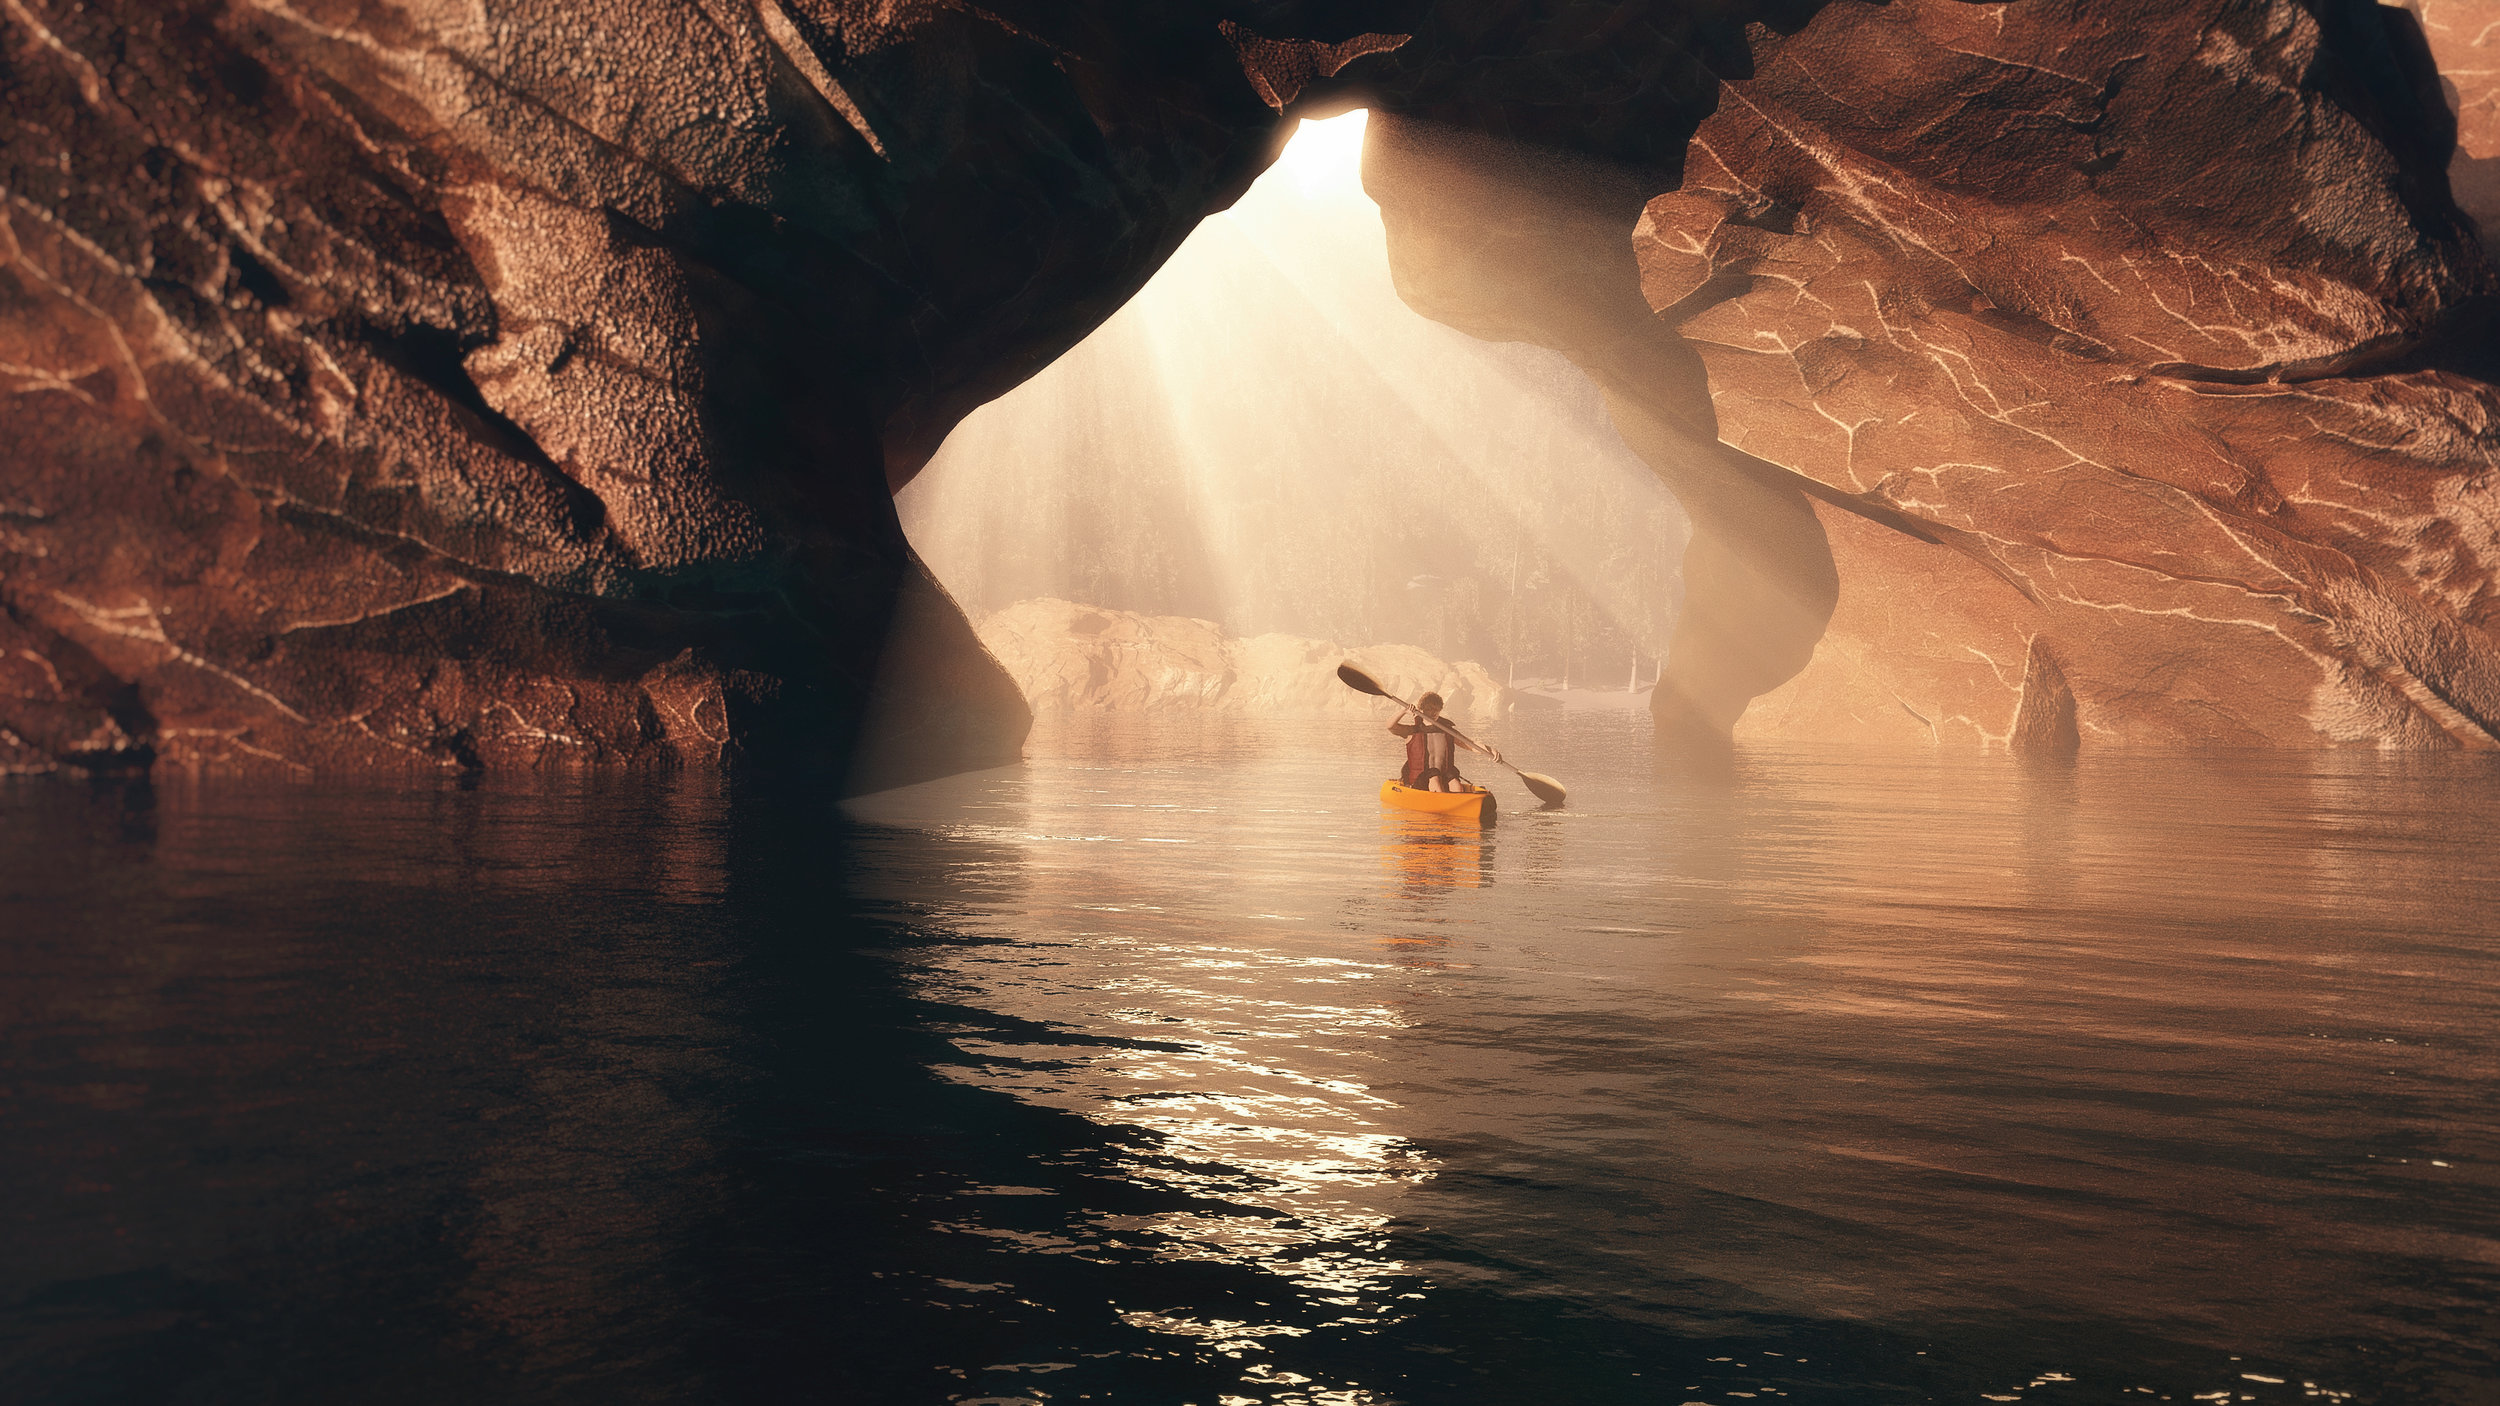 Image of a person in a kayak paddling alone in a cave with light streaming in through an opening behind.